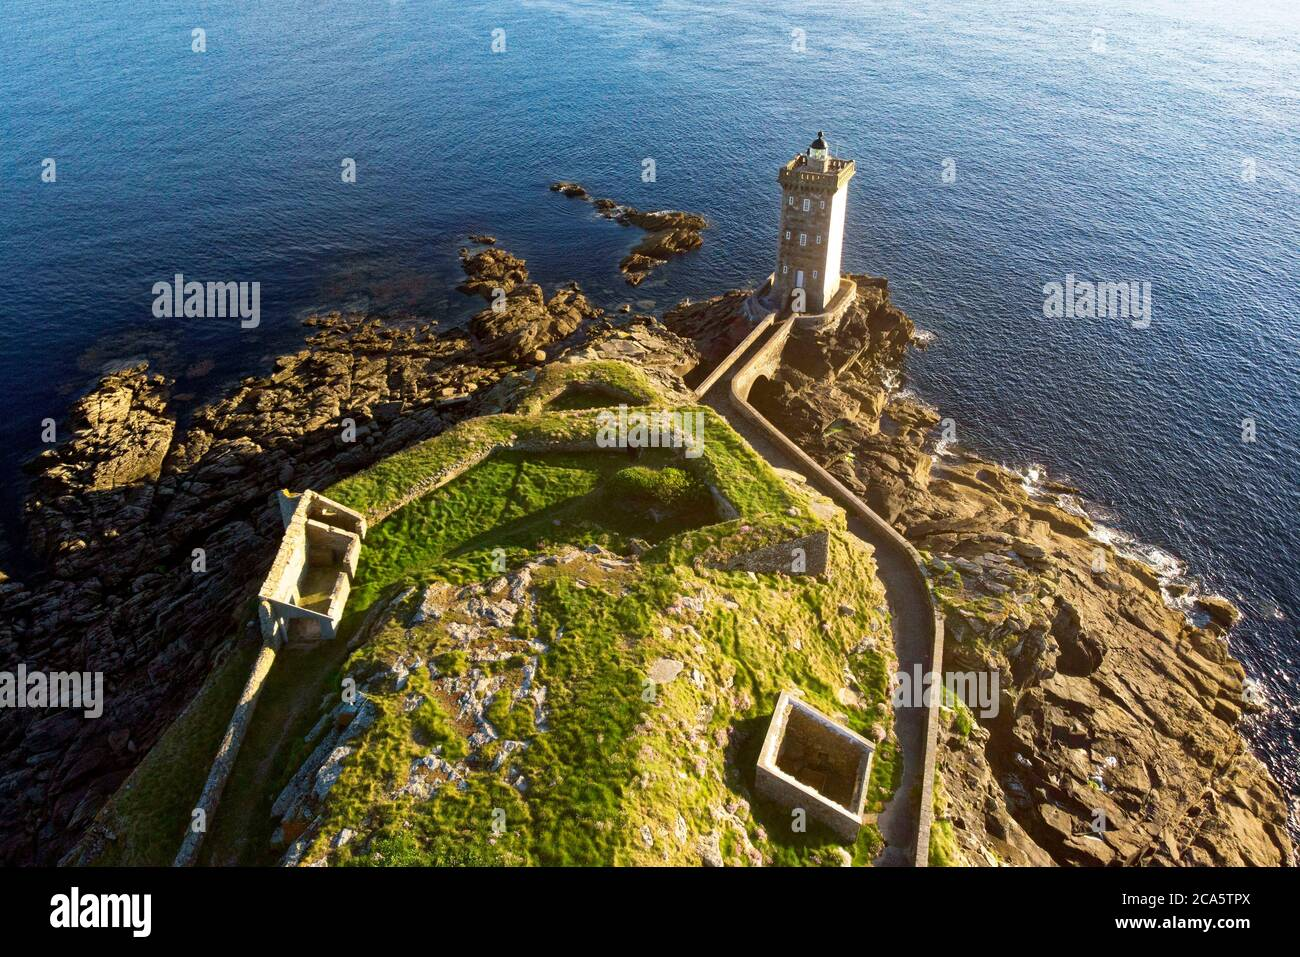 France, Finistere, Iroise see, Armorique Regional natural park, Le Conquet, Kermorvan peninsula, Pointe de Kermorvan and Kermorvan lighthouse (aerial view) Stock Photo